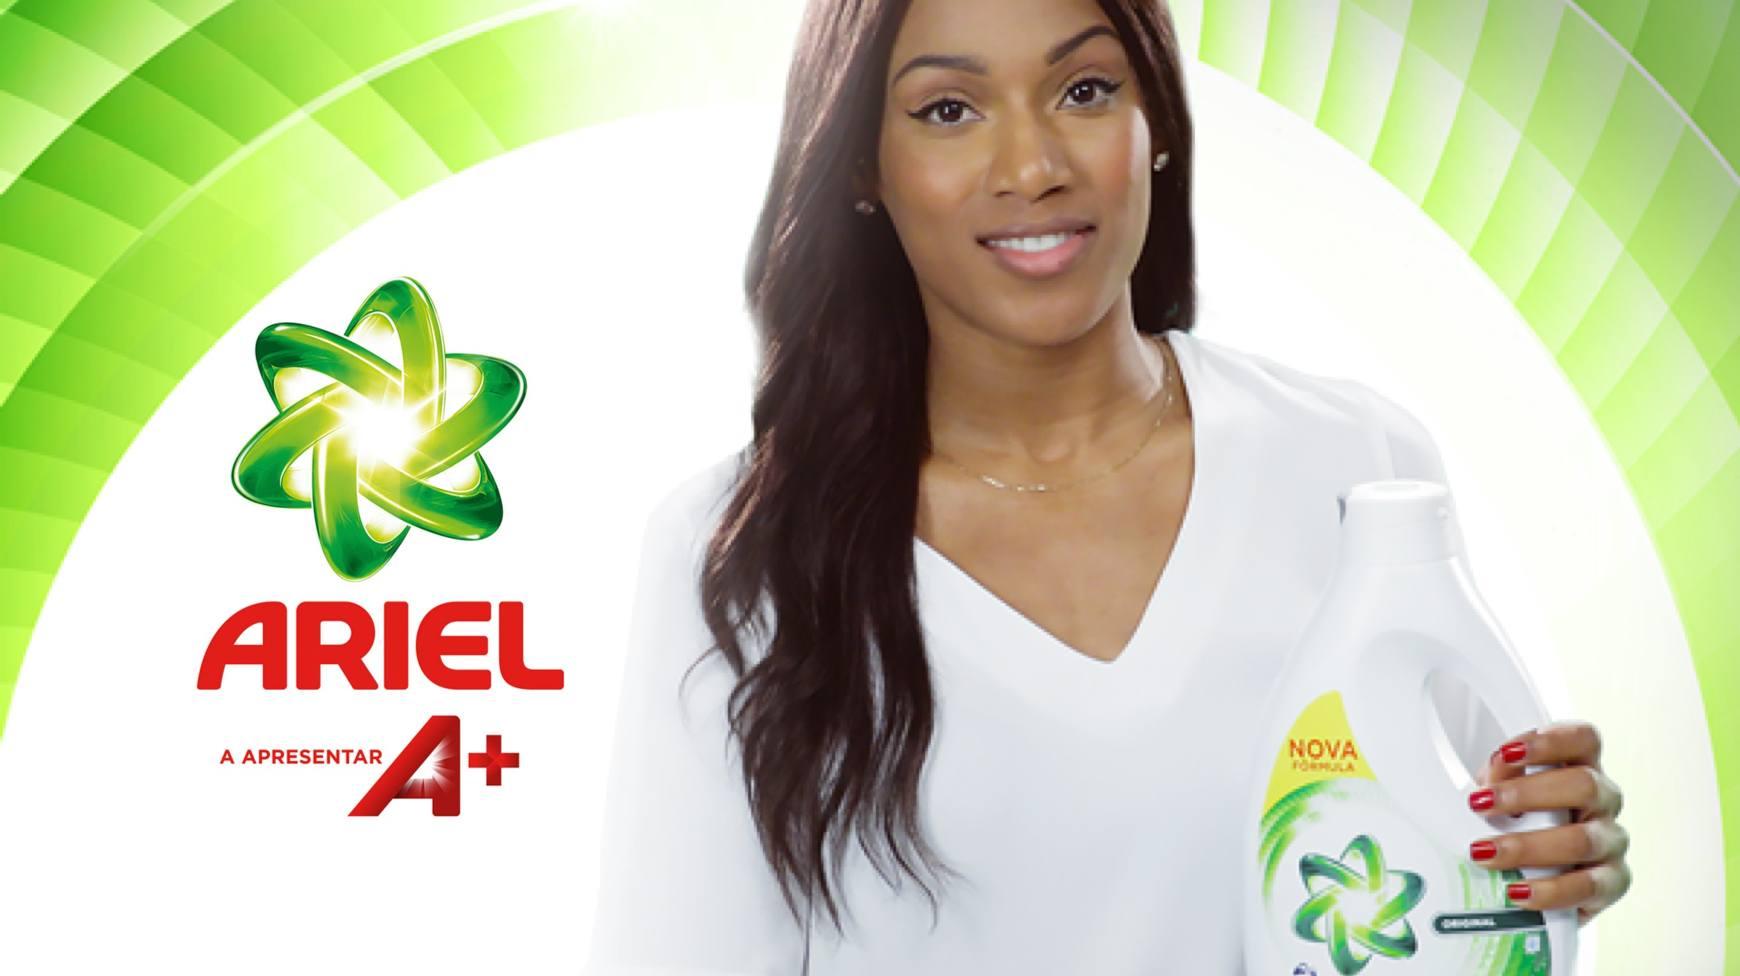 Ariel A+ with Patrícia Mamona: Triple Jump into Success